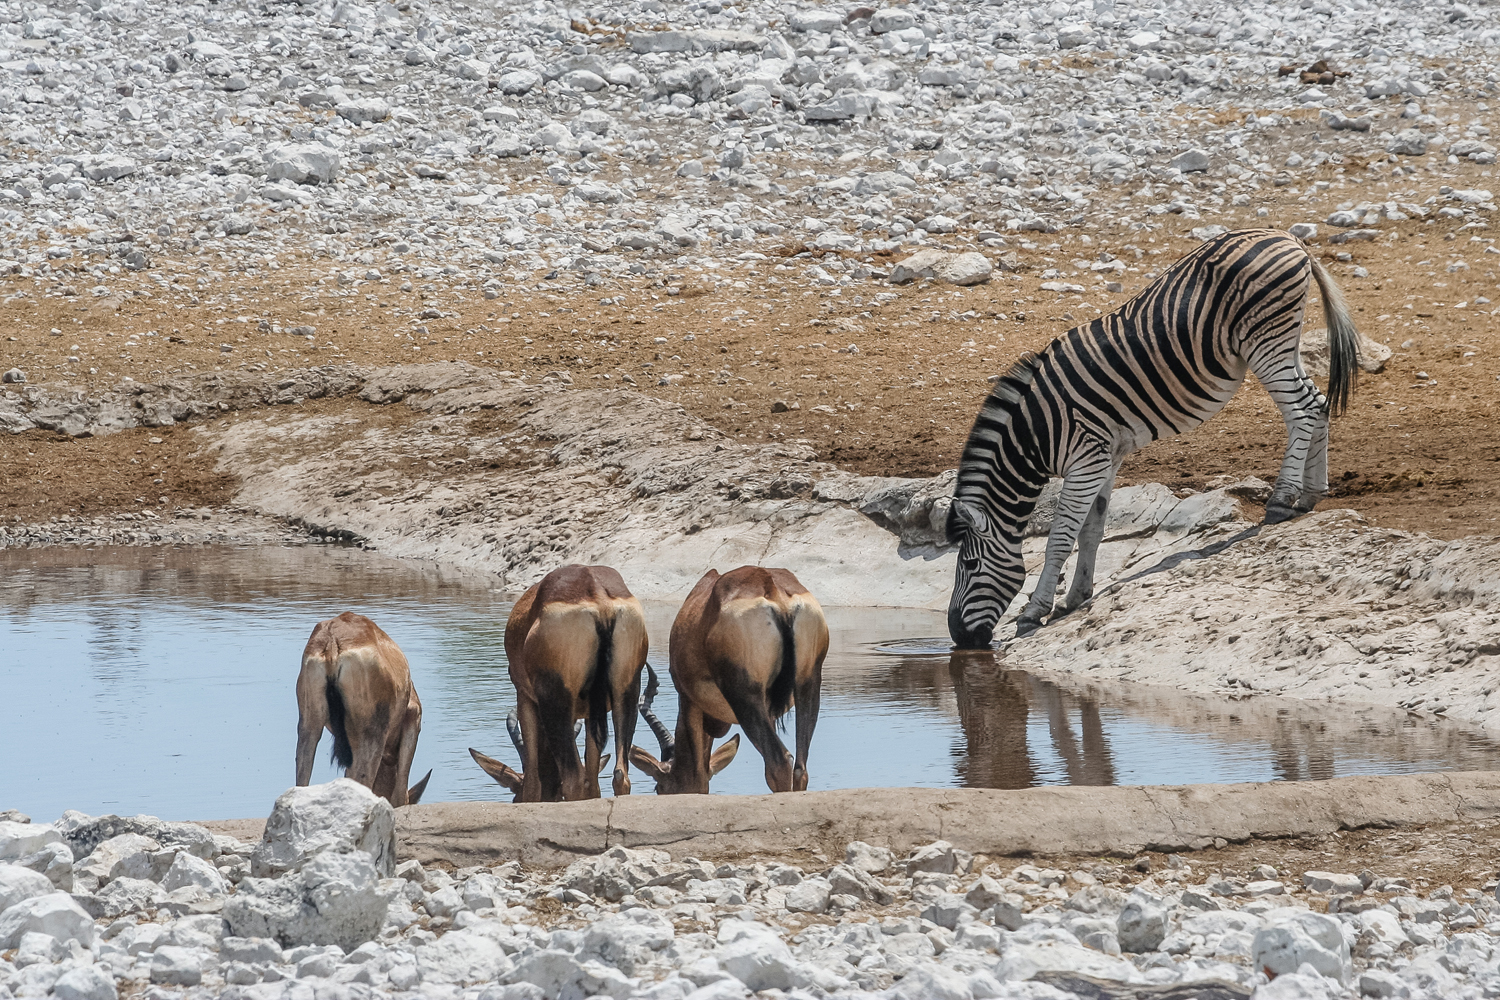 Zebra and red hartebeest share water at one of Etosha National Park's watering holes